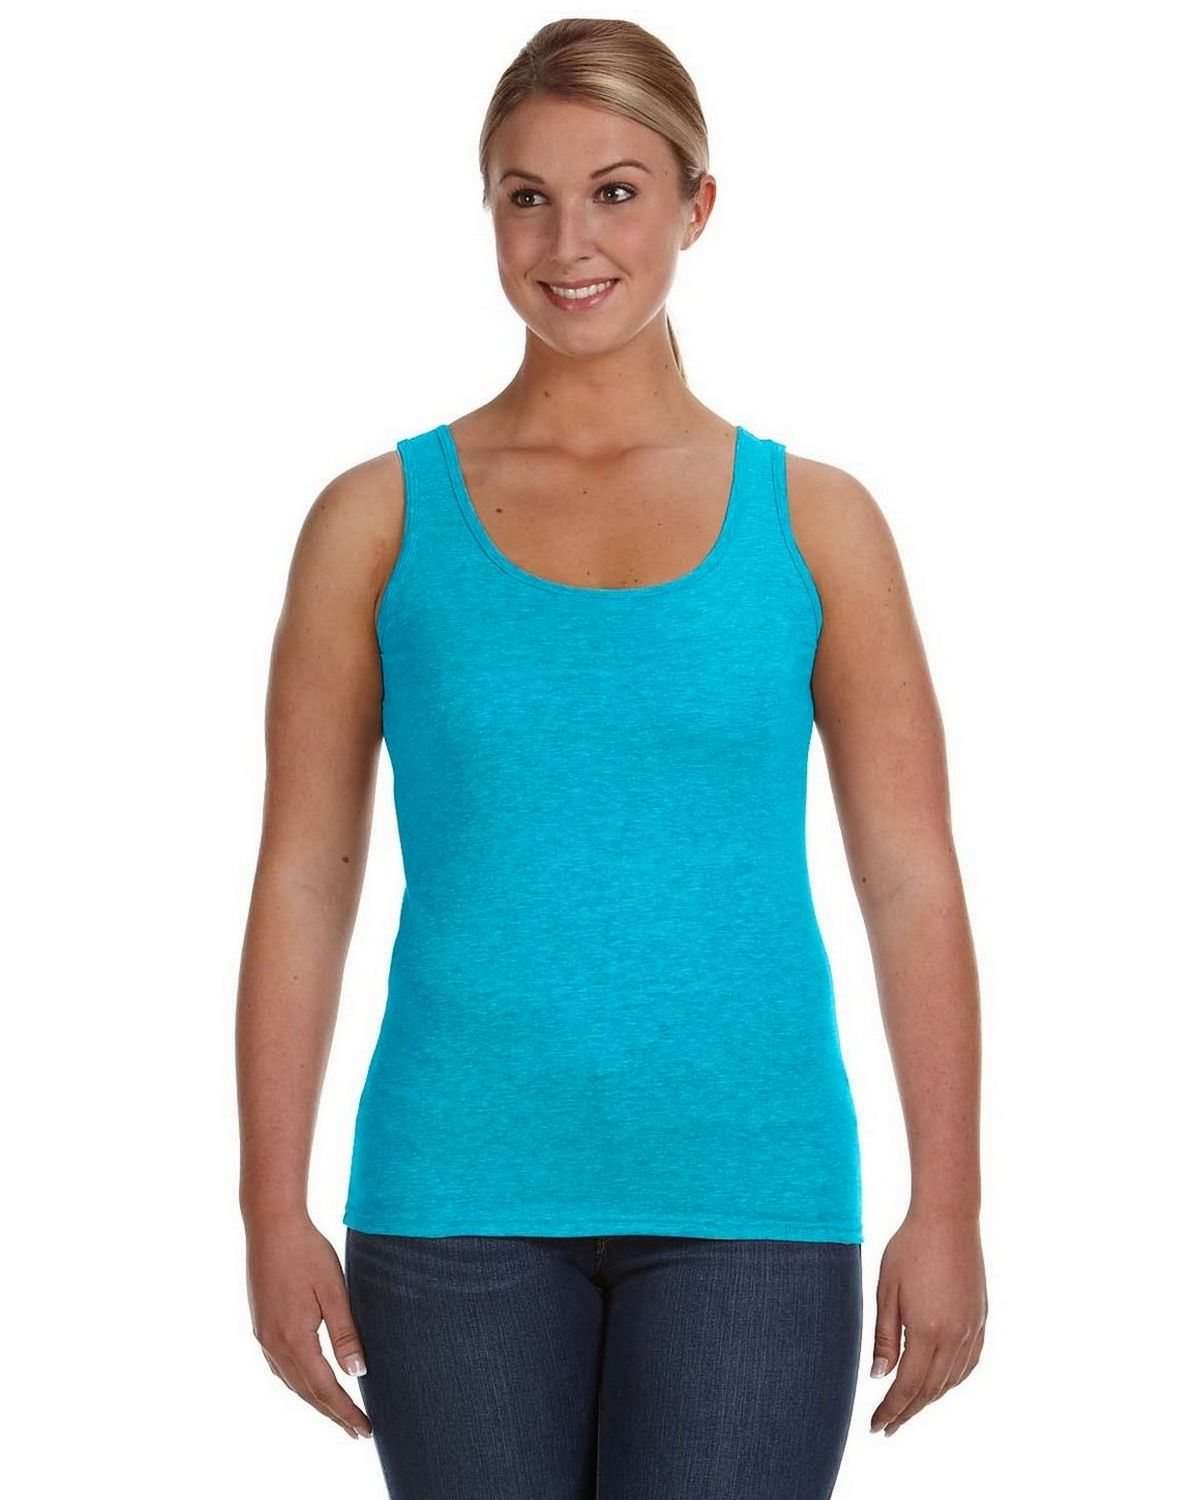 Anvil 882L Ladies Ringspun Tank - Caribbean Blue - XL 882L